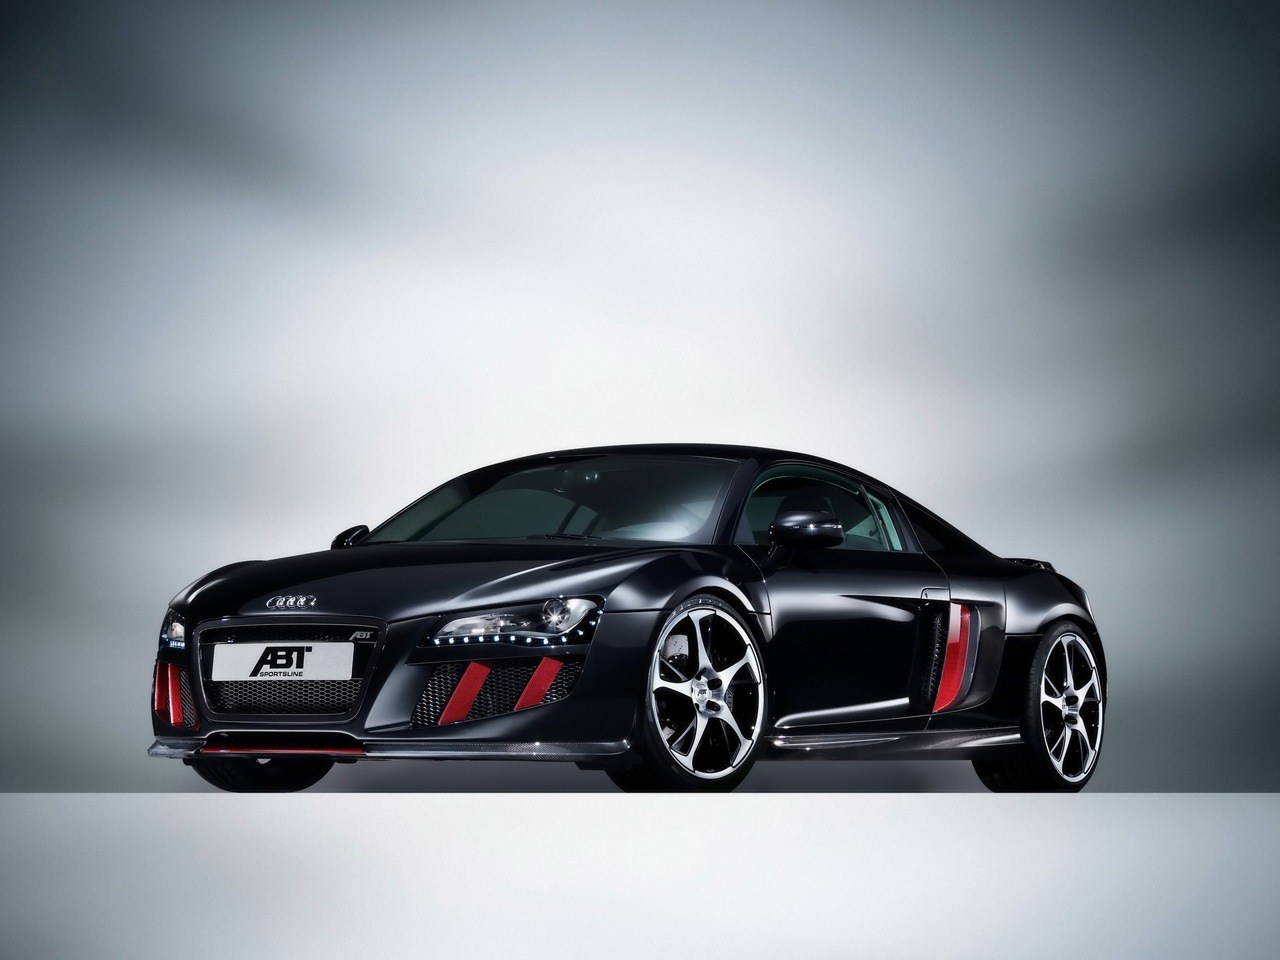 AUDI RS8 Automobile Wallpapers in HD | Iphone | Android| Desktop 5 Wallpaper